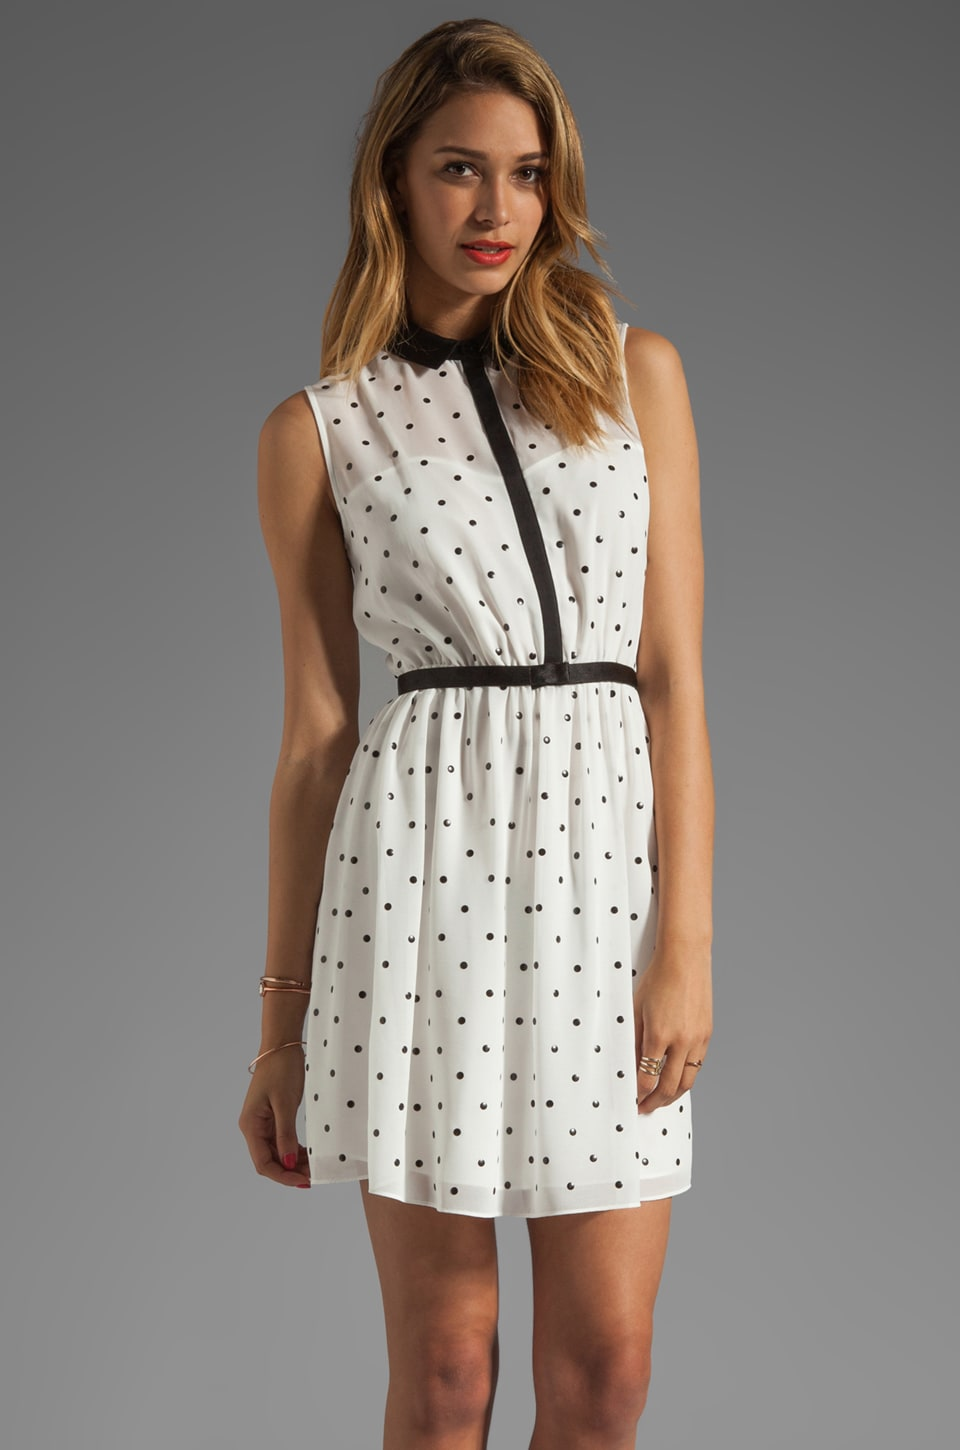 ERIN erin fetherston RUNWAY Claudine Dress in White/Black